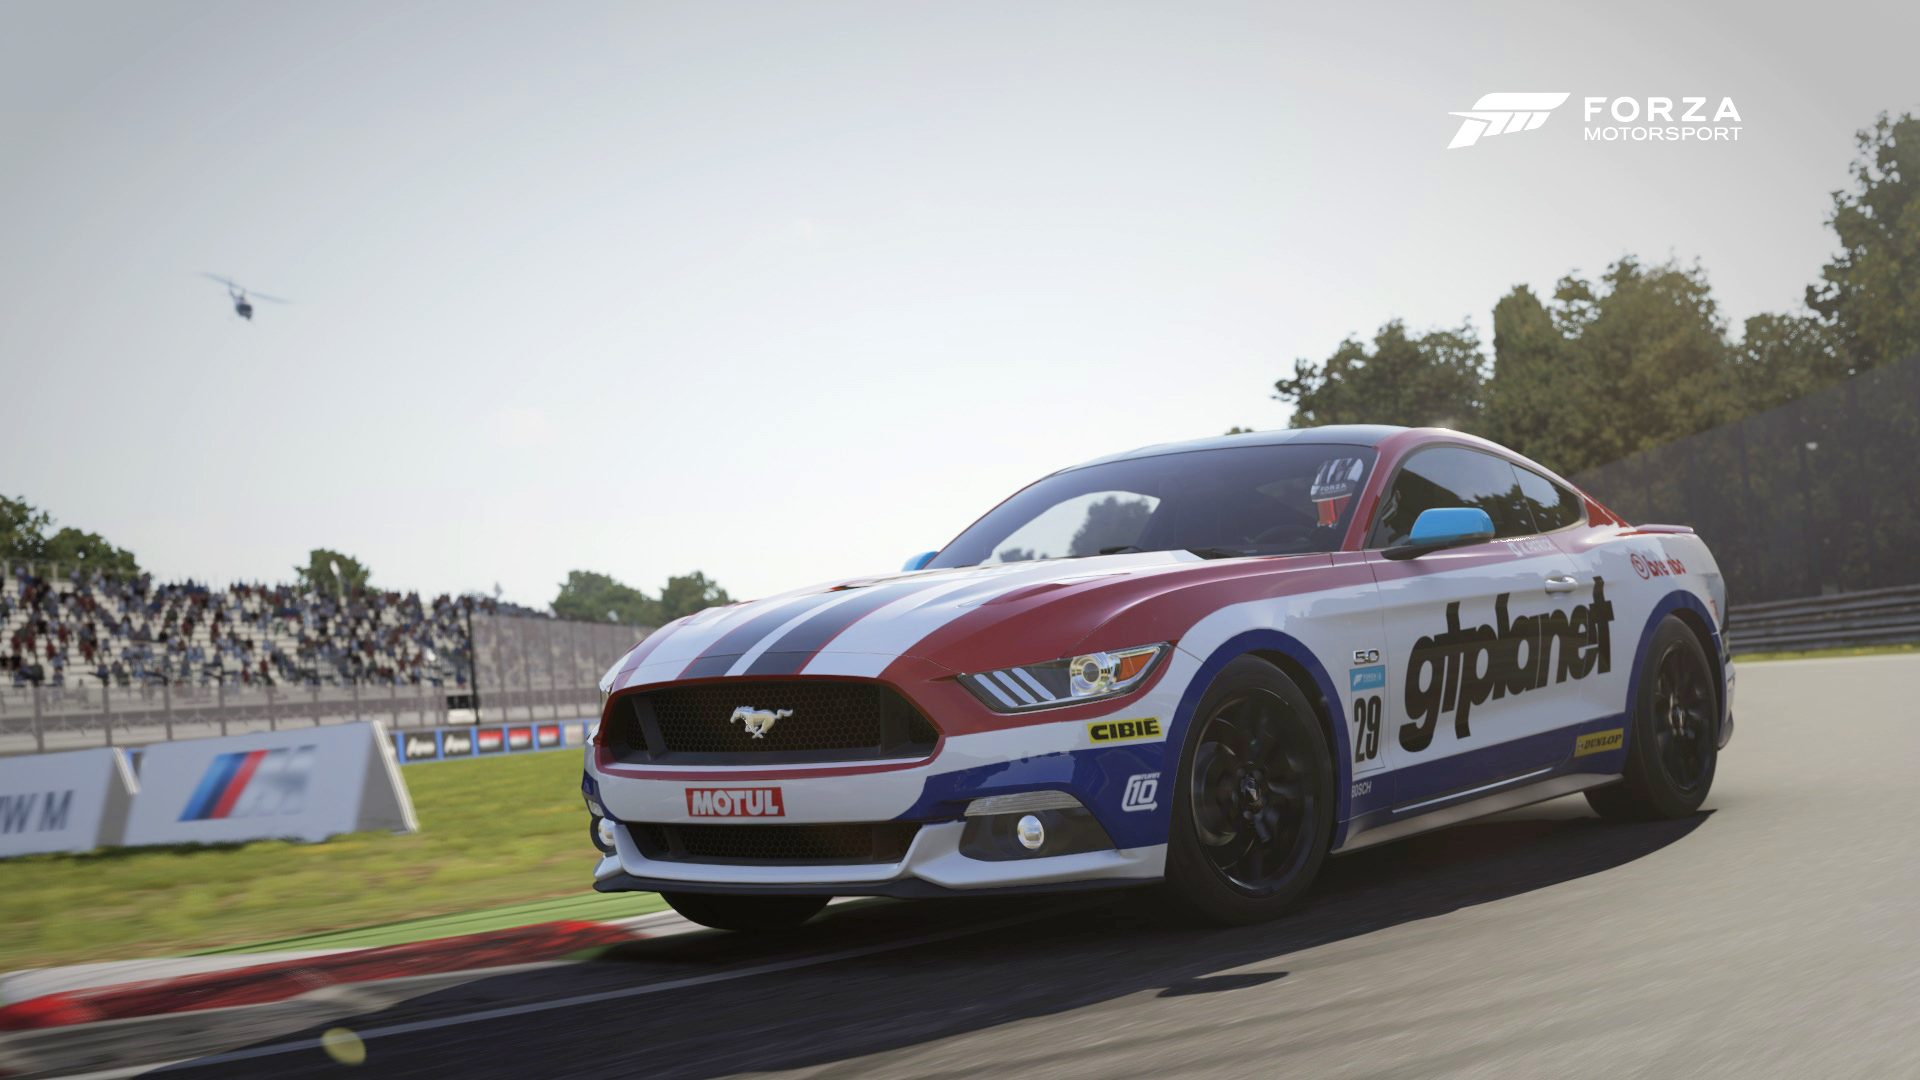 Image 33 Of 50 Gallery 1965 Mustang Gt350 Part Ford 1964 Gt Forzarc Week One Esl Tournament Moved To Nrburgring Gp